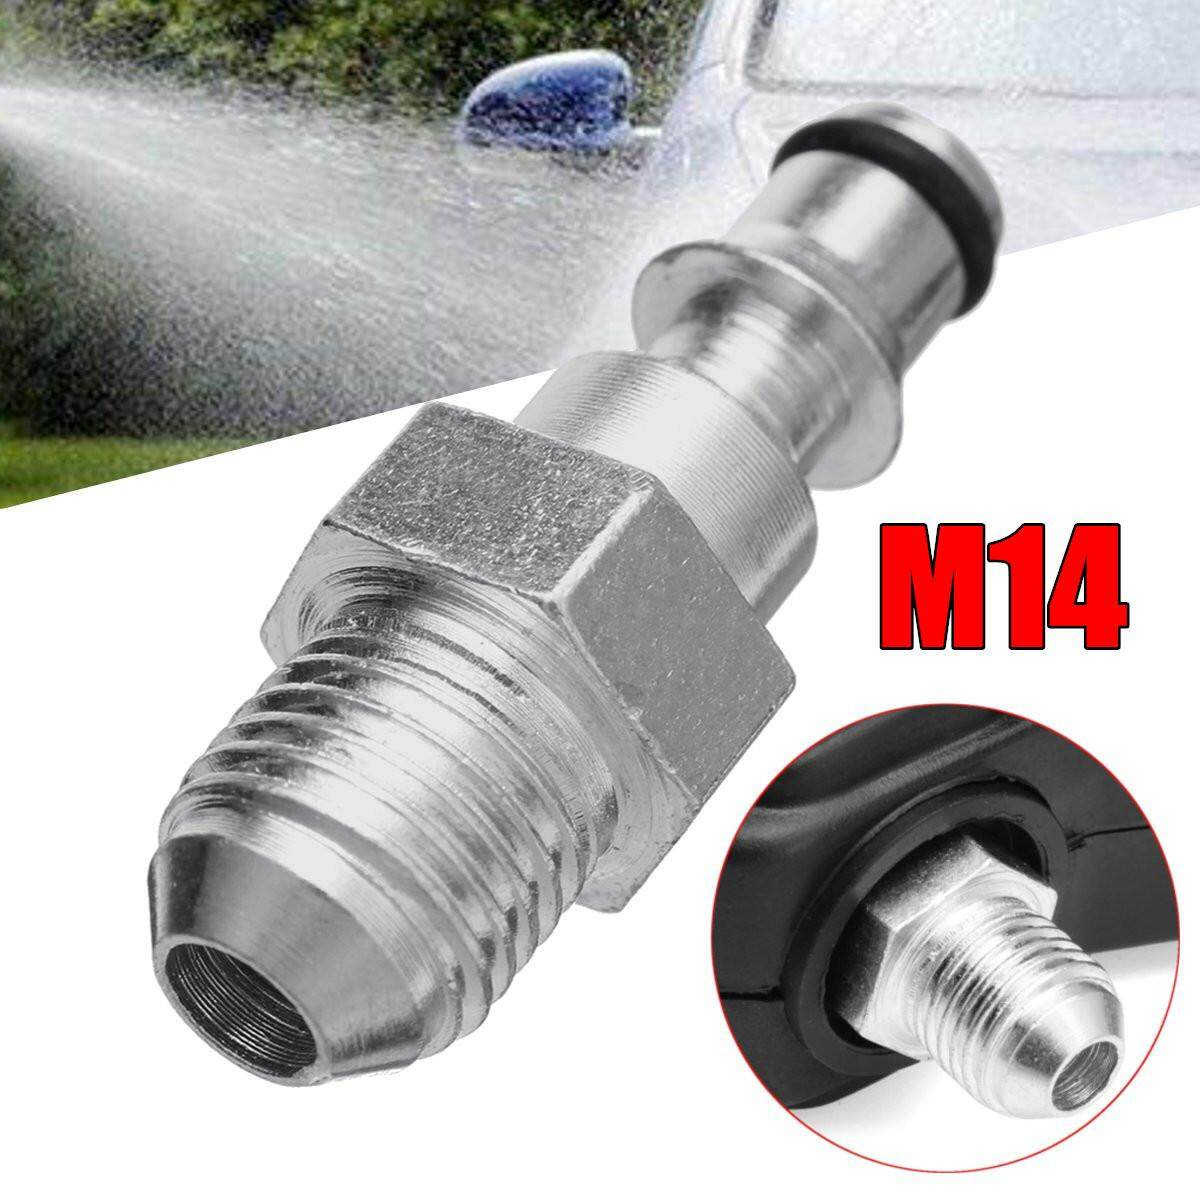 Quick Connection Pressure Washer G un Hose Fitting To M14 Adapter For Lavor VAX - intl